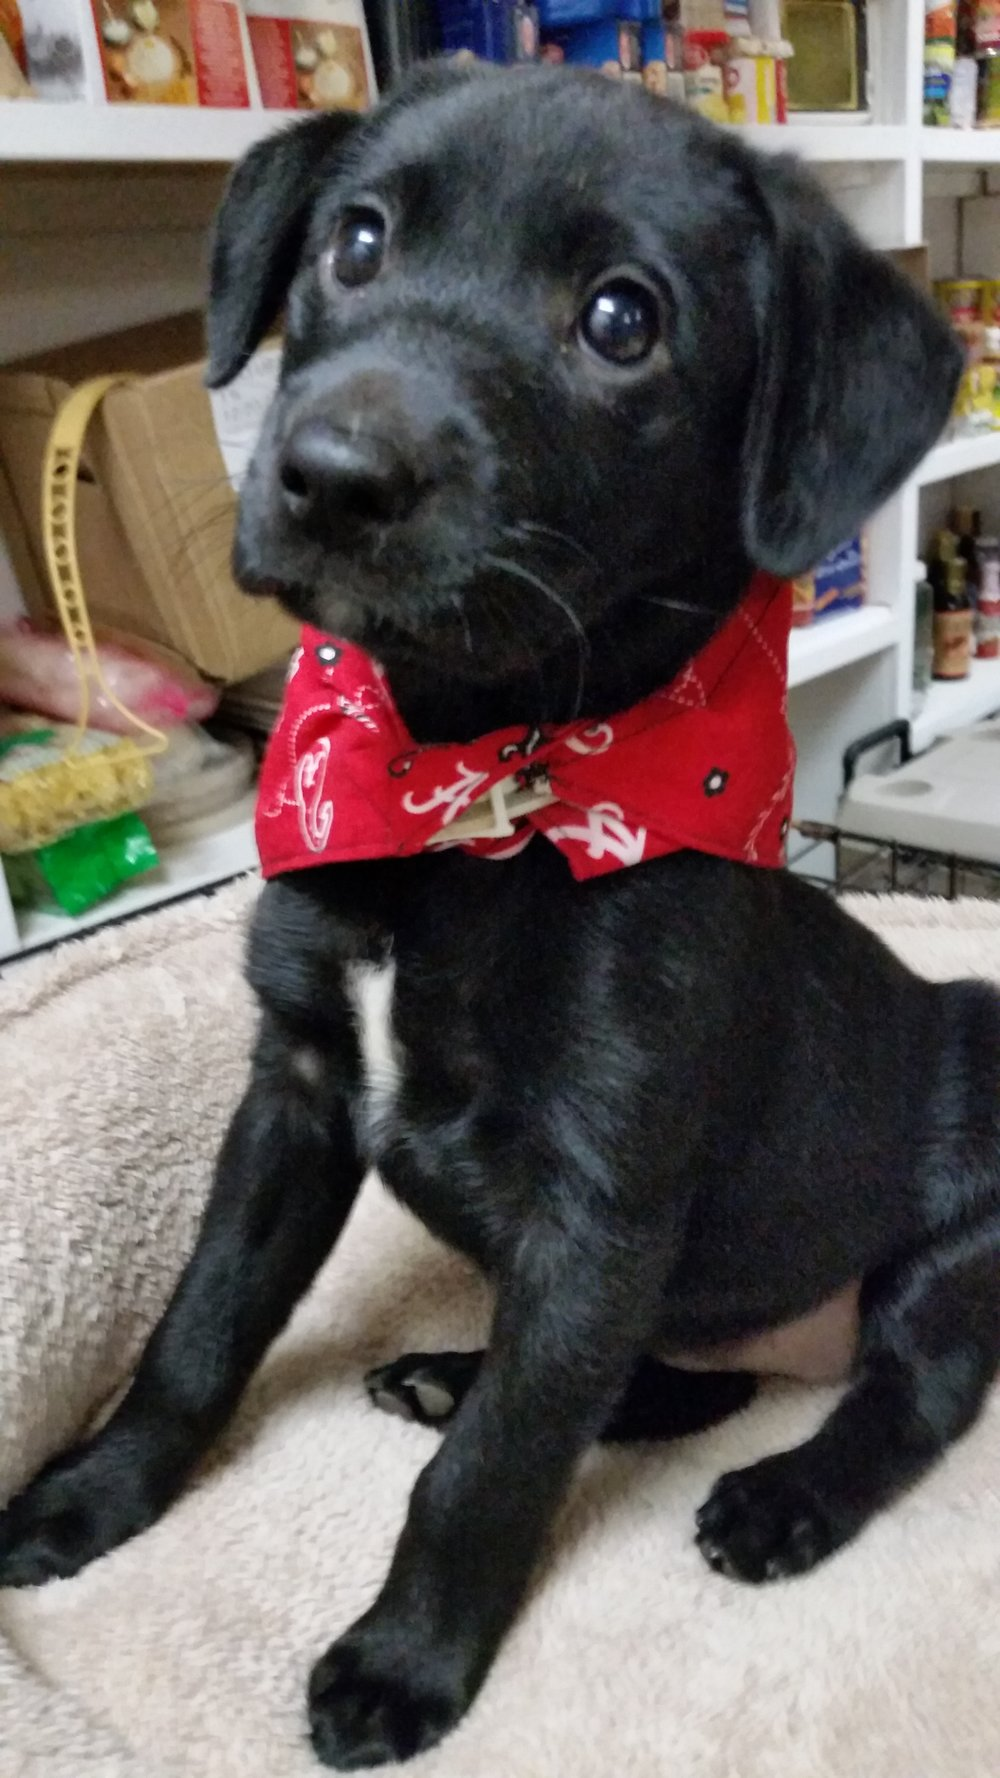 Brenda is a 6 week old beauty awaiting her forever home! She is extremely smart, loving and affectionate. Brenda will receive two sets of puppy vaccines, dewormed, Bordetella, rabies (if reaches 16 weeks while with us) and microchipped.